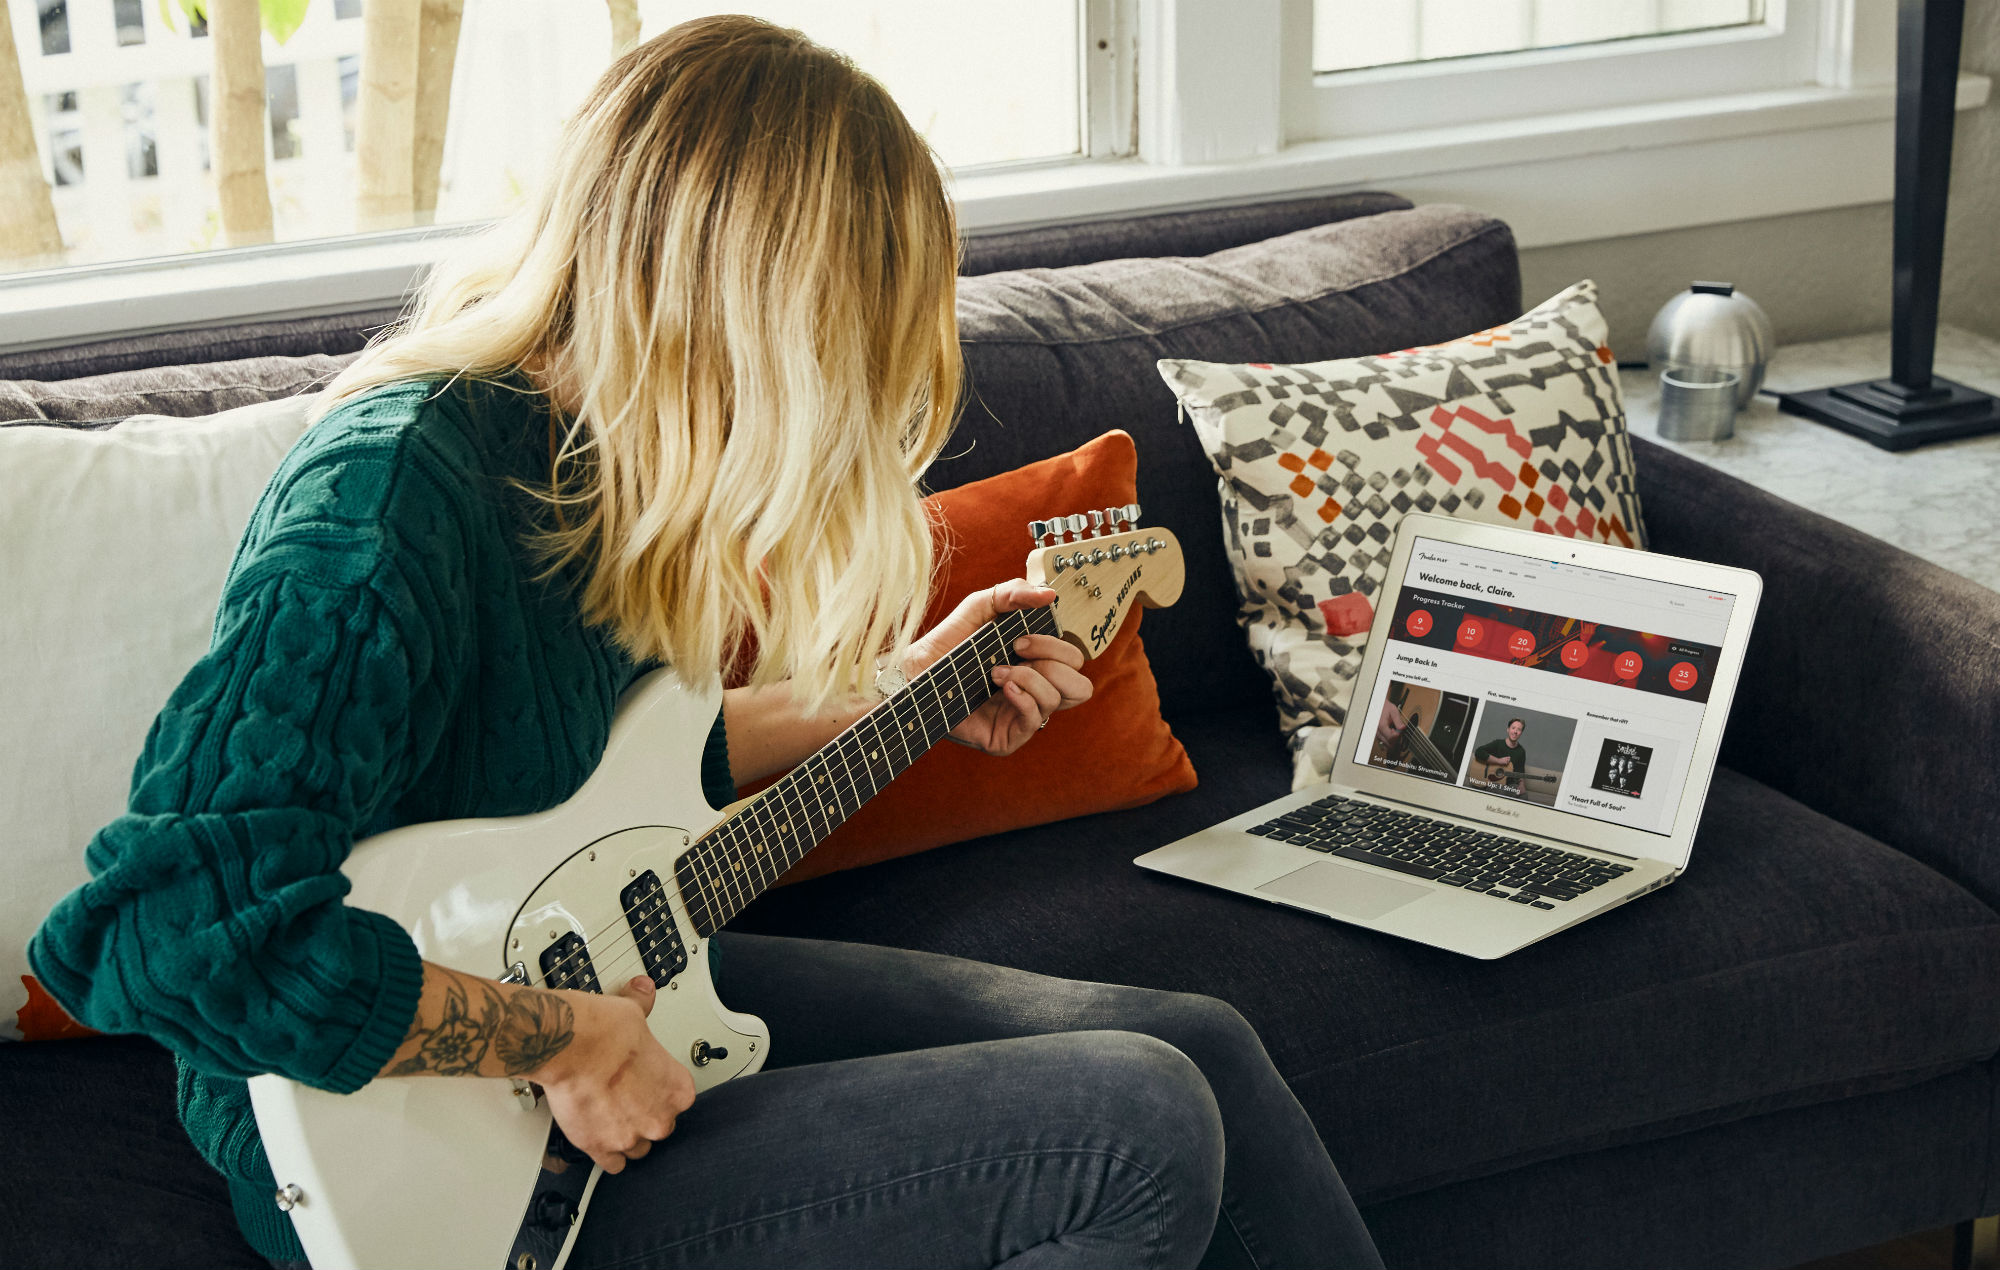 Fender Is Offering 3 Months Of Free Online Guitar Lessons